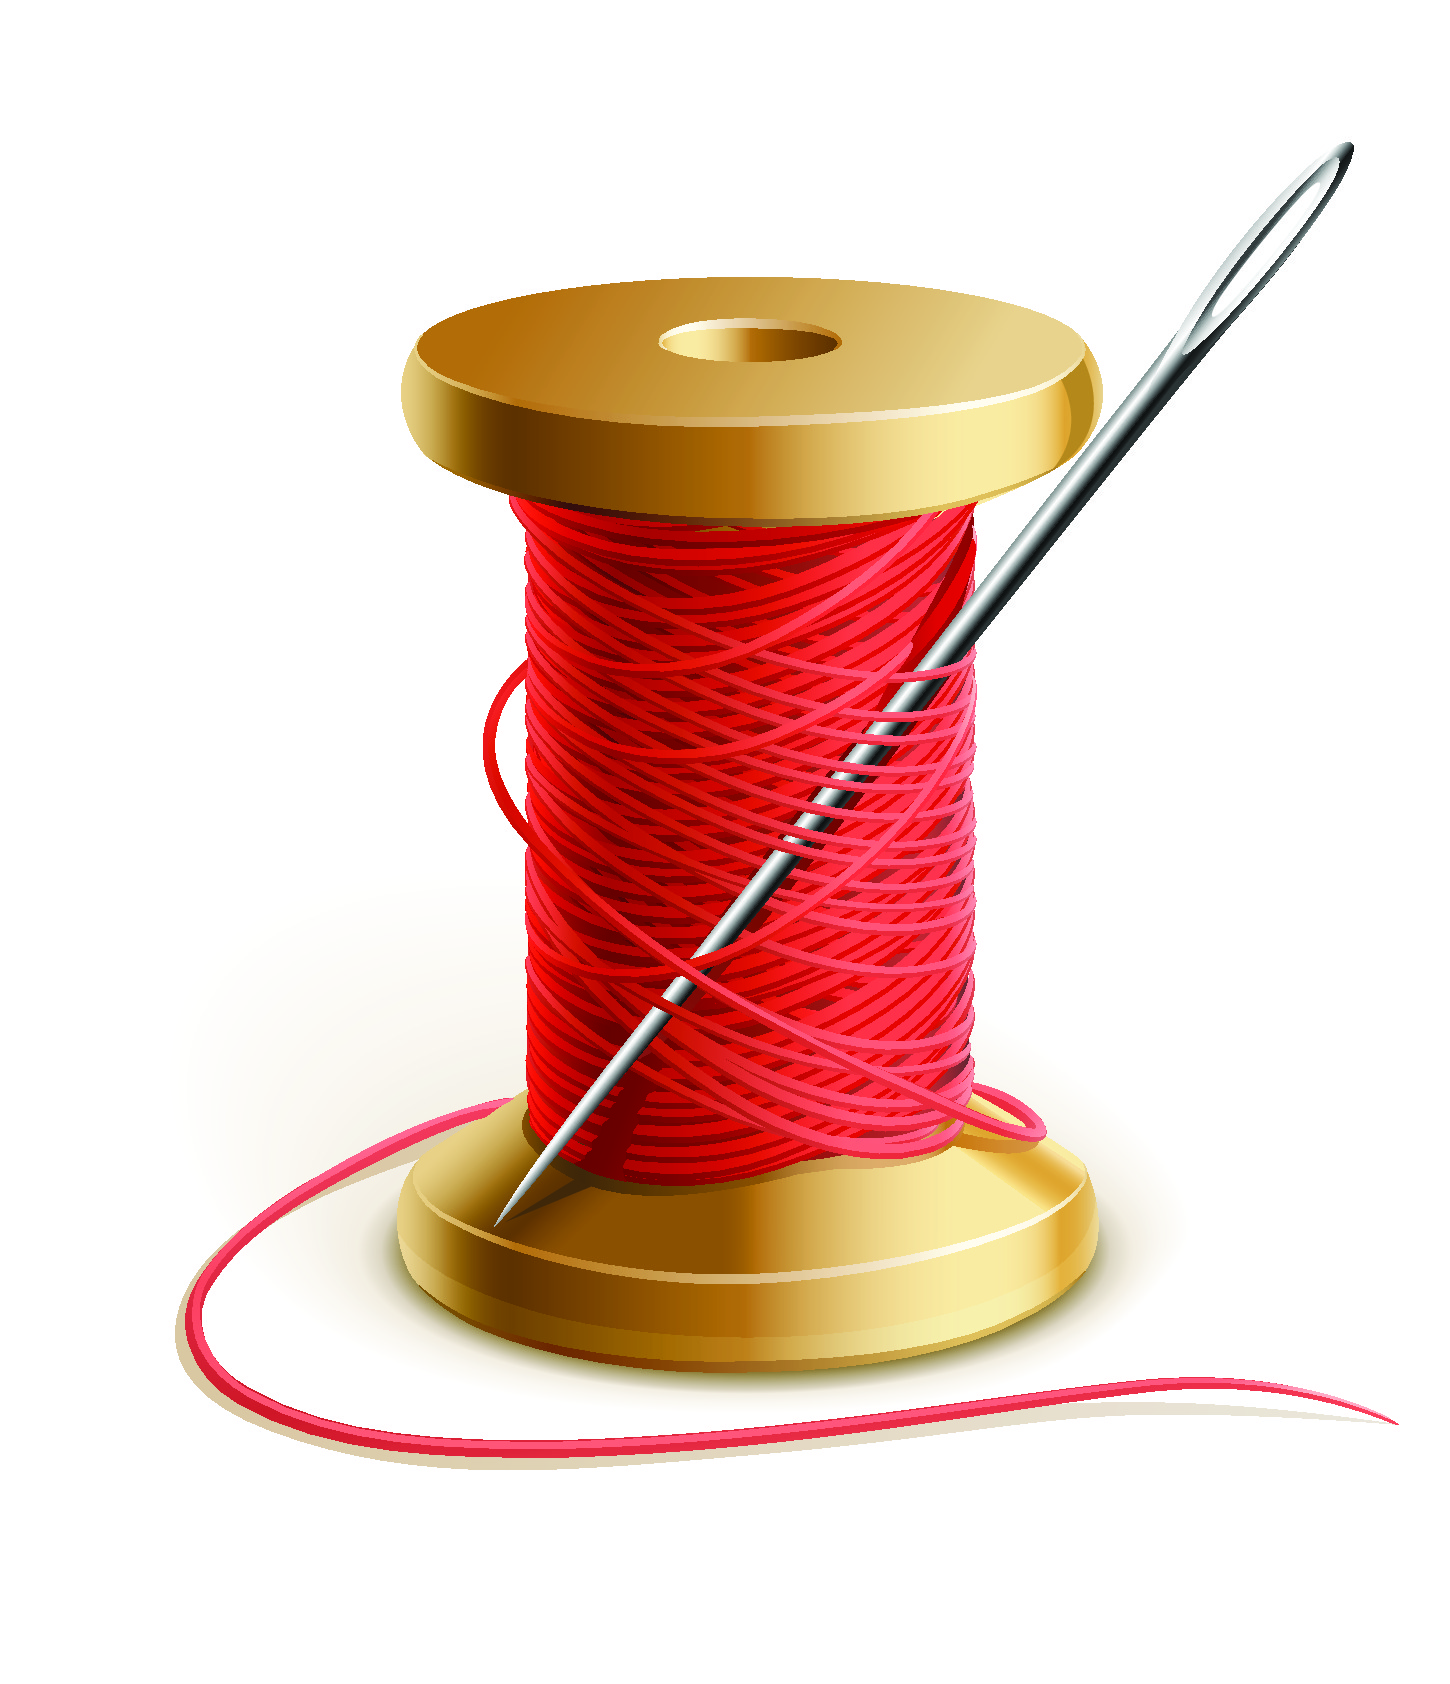 cotton reel with a needle